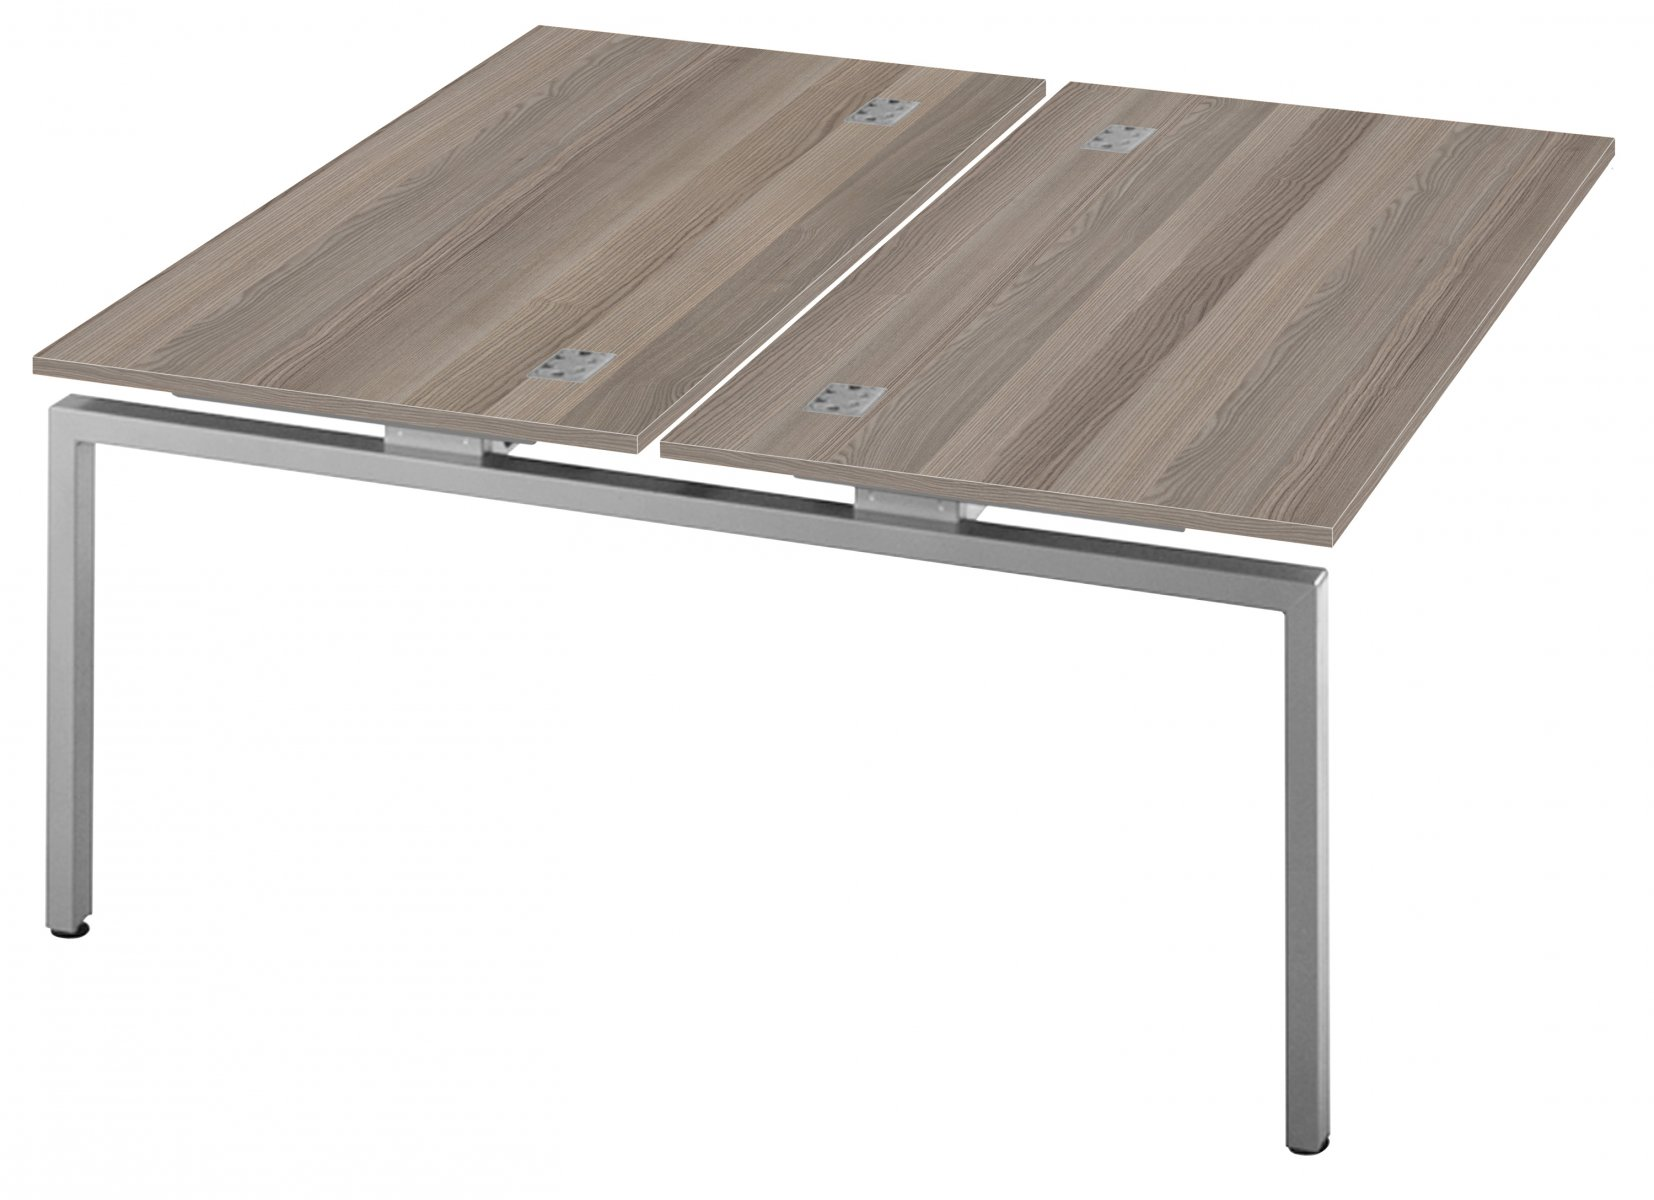 Fraction Bench Double 160 Extension Unit Workstation - Grey Oak